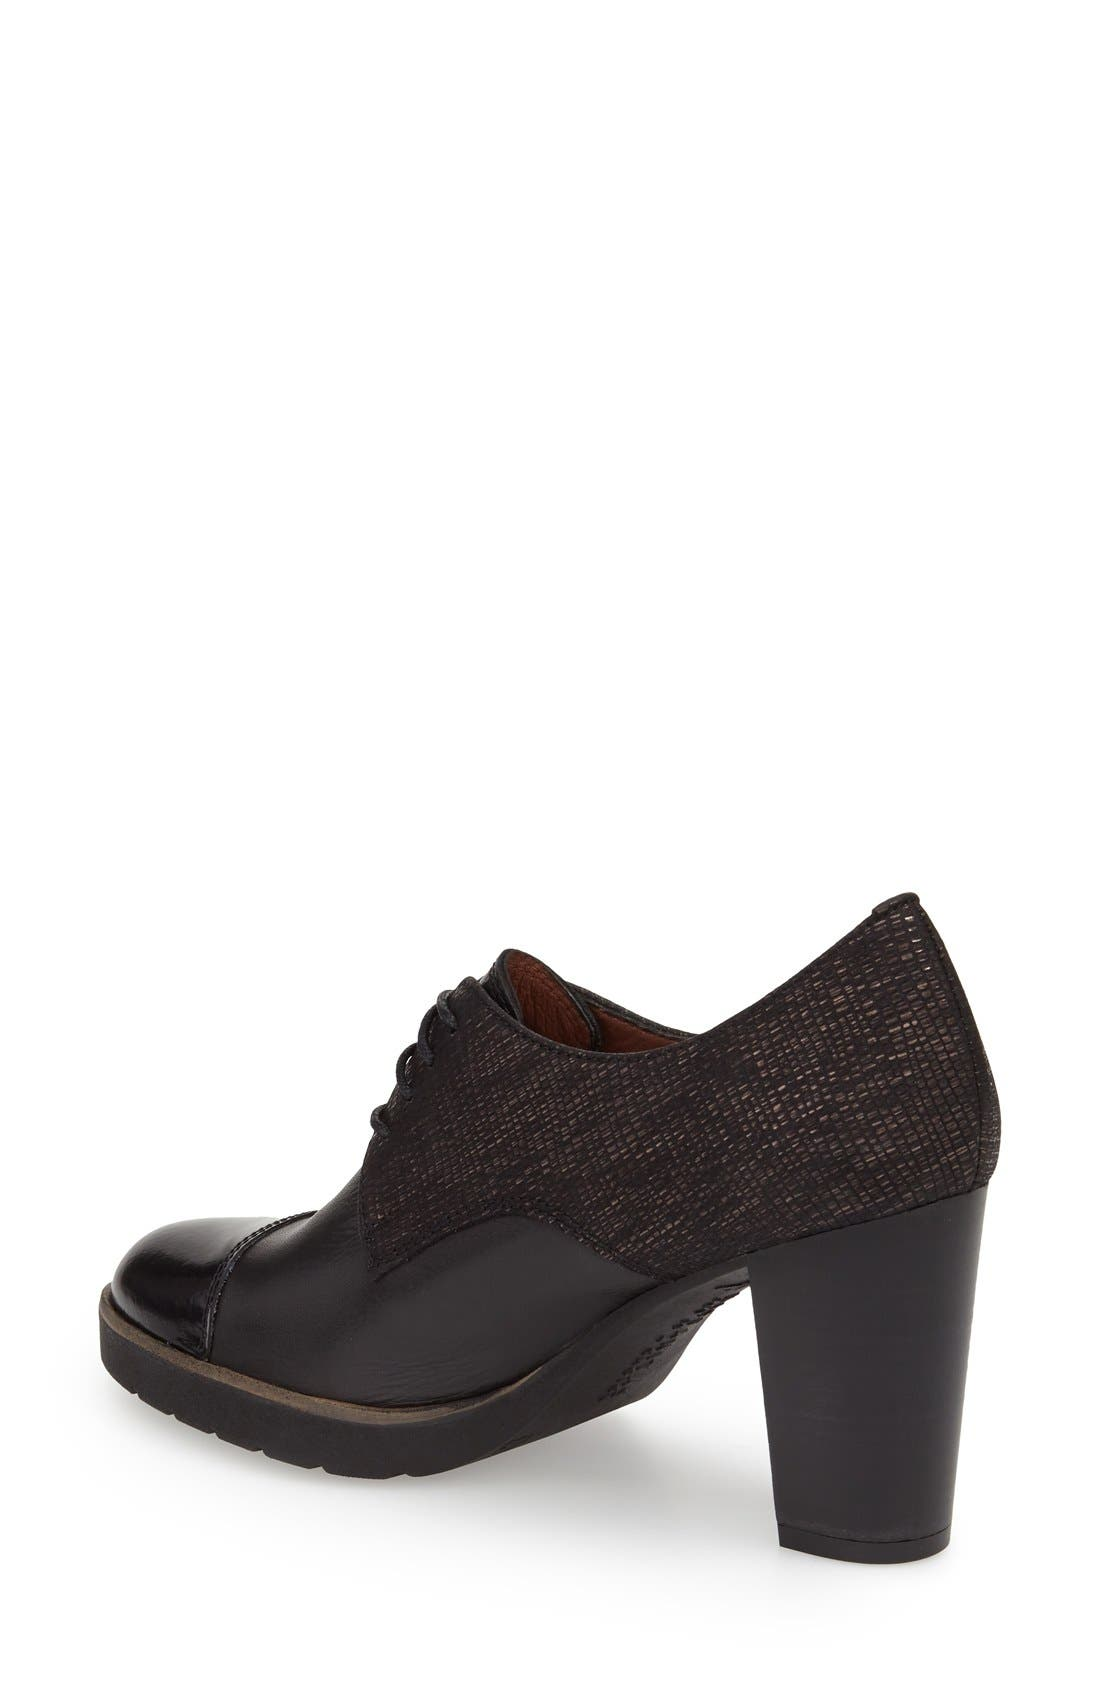 'Viv' Cap Toe Pump,                             Alternate thumbnail 2, color,                             BLACK LEATHER